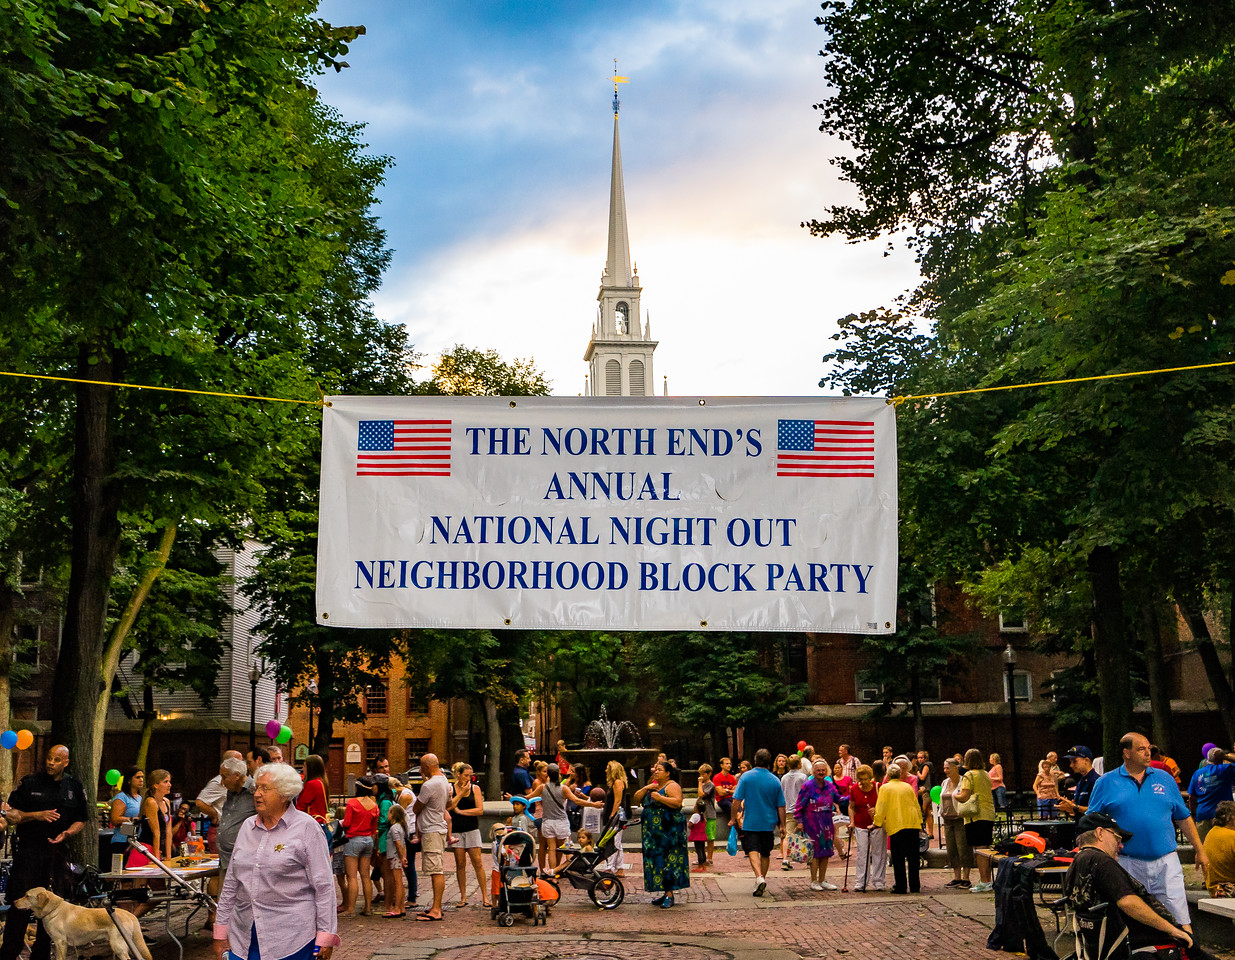 North End National Night Out on the Prado - Paul Revere Mall